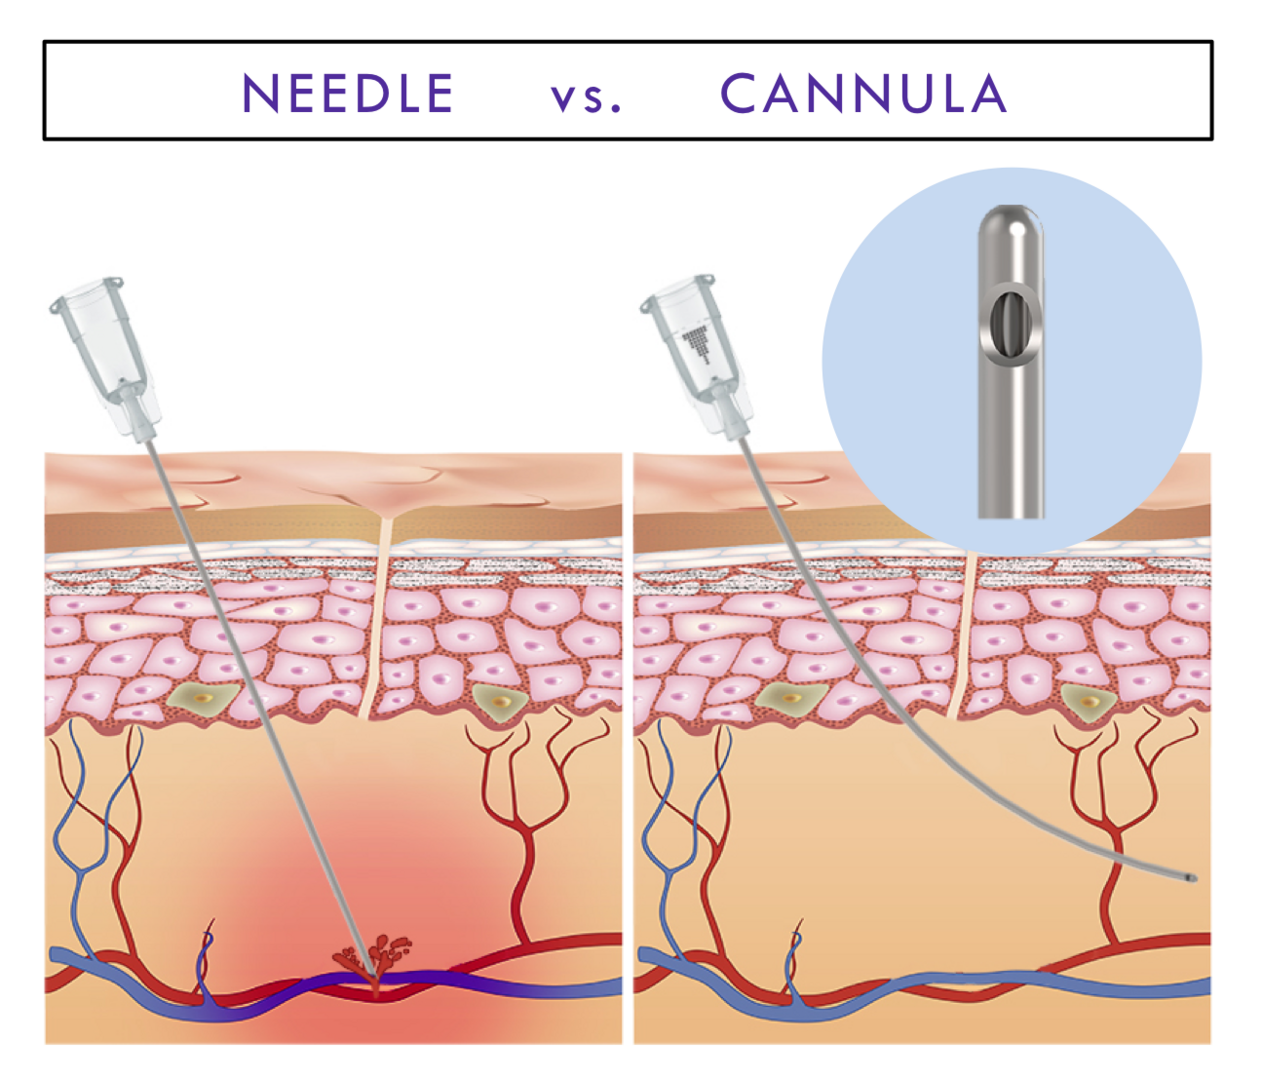 Dermal filler cannula